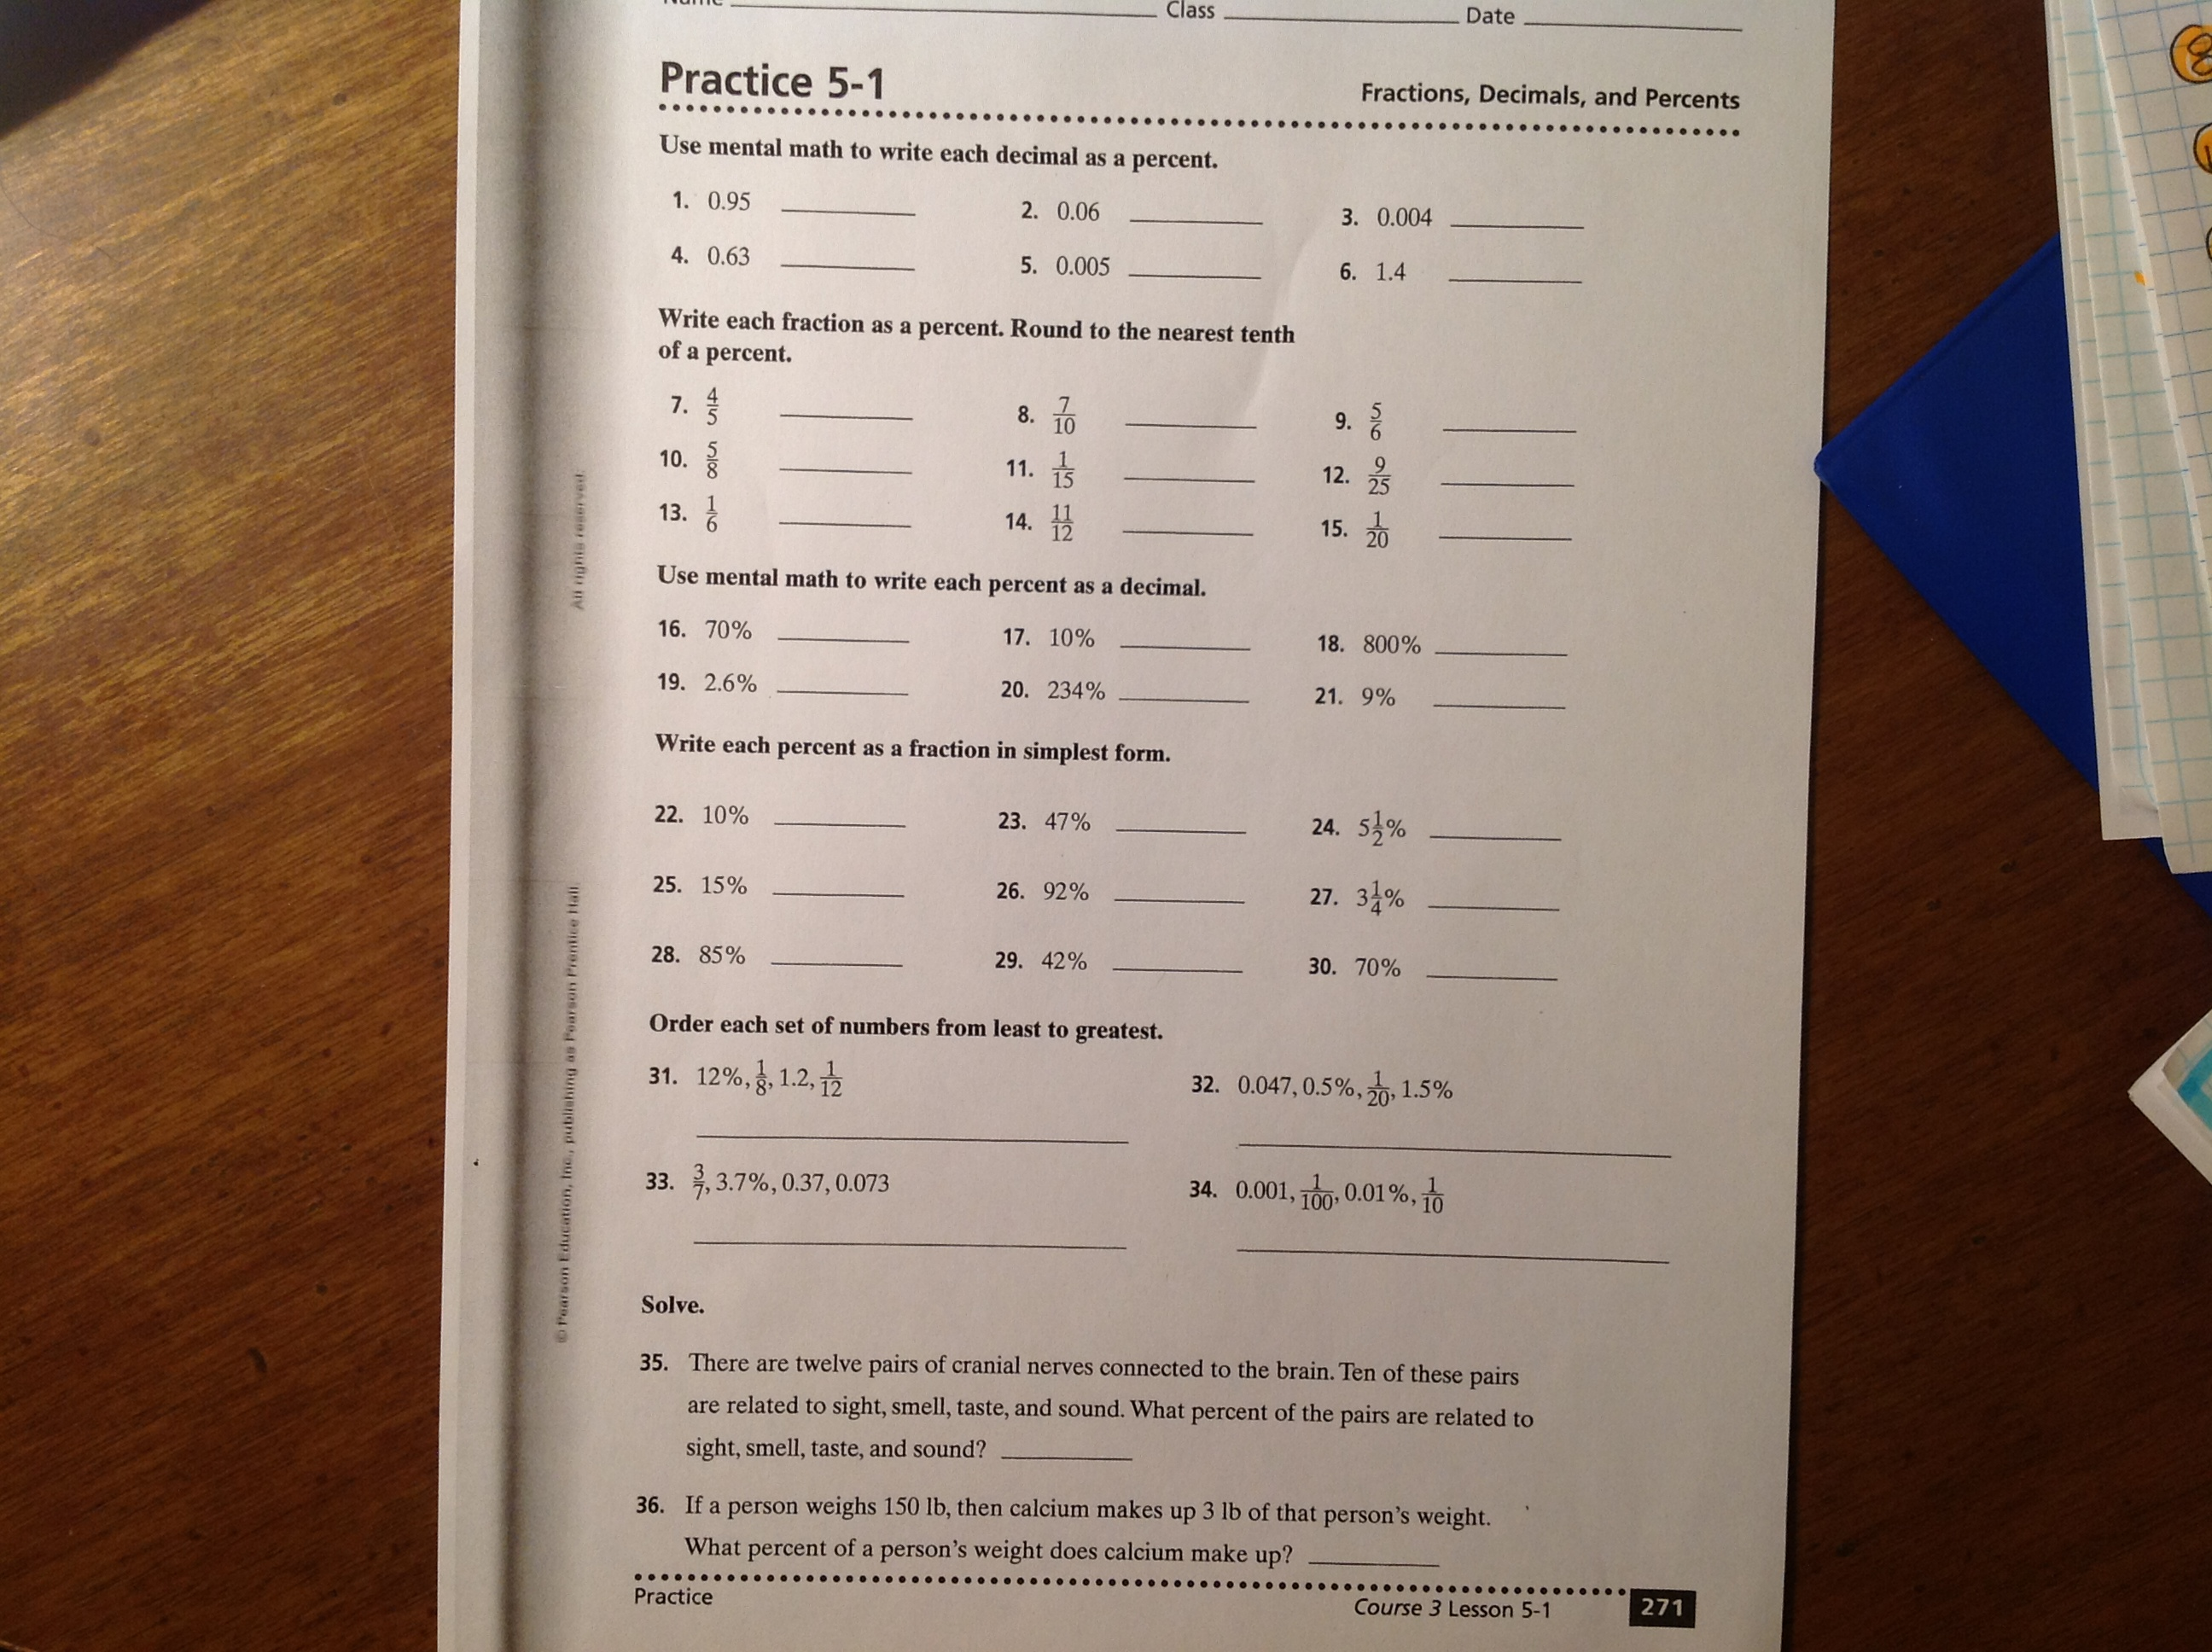 Ordering fractions decimals percentages worksheet tes